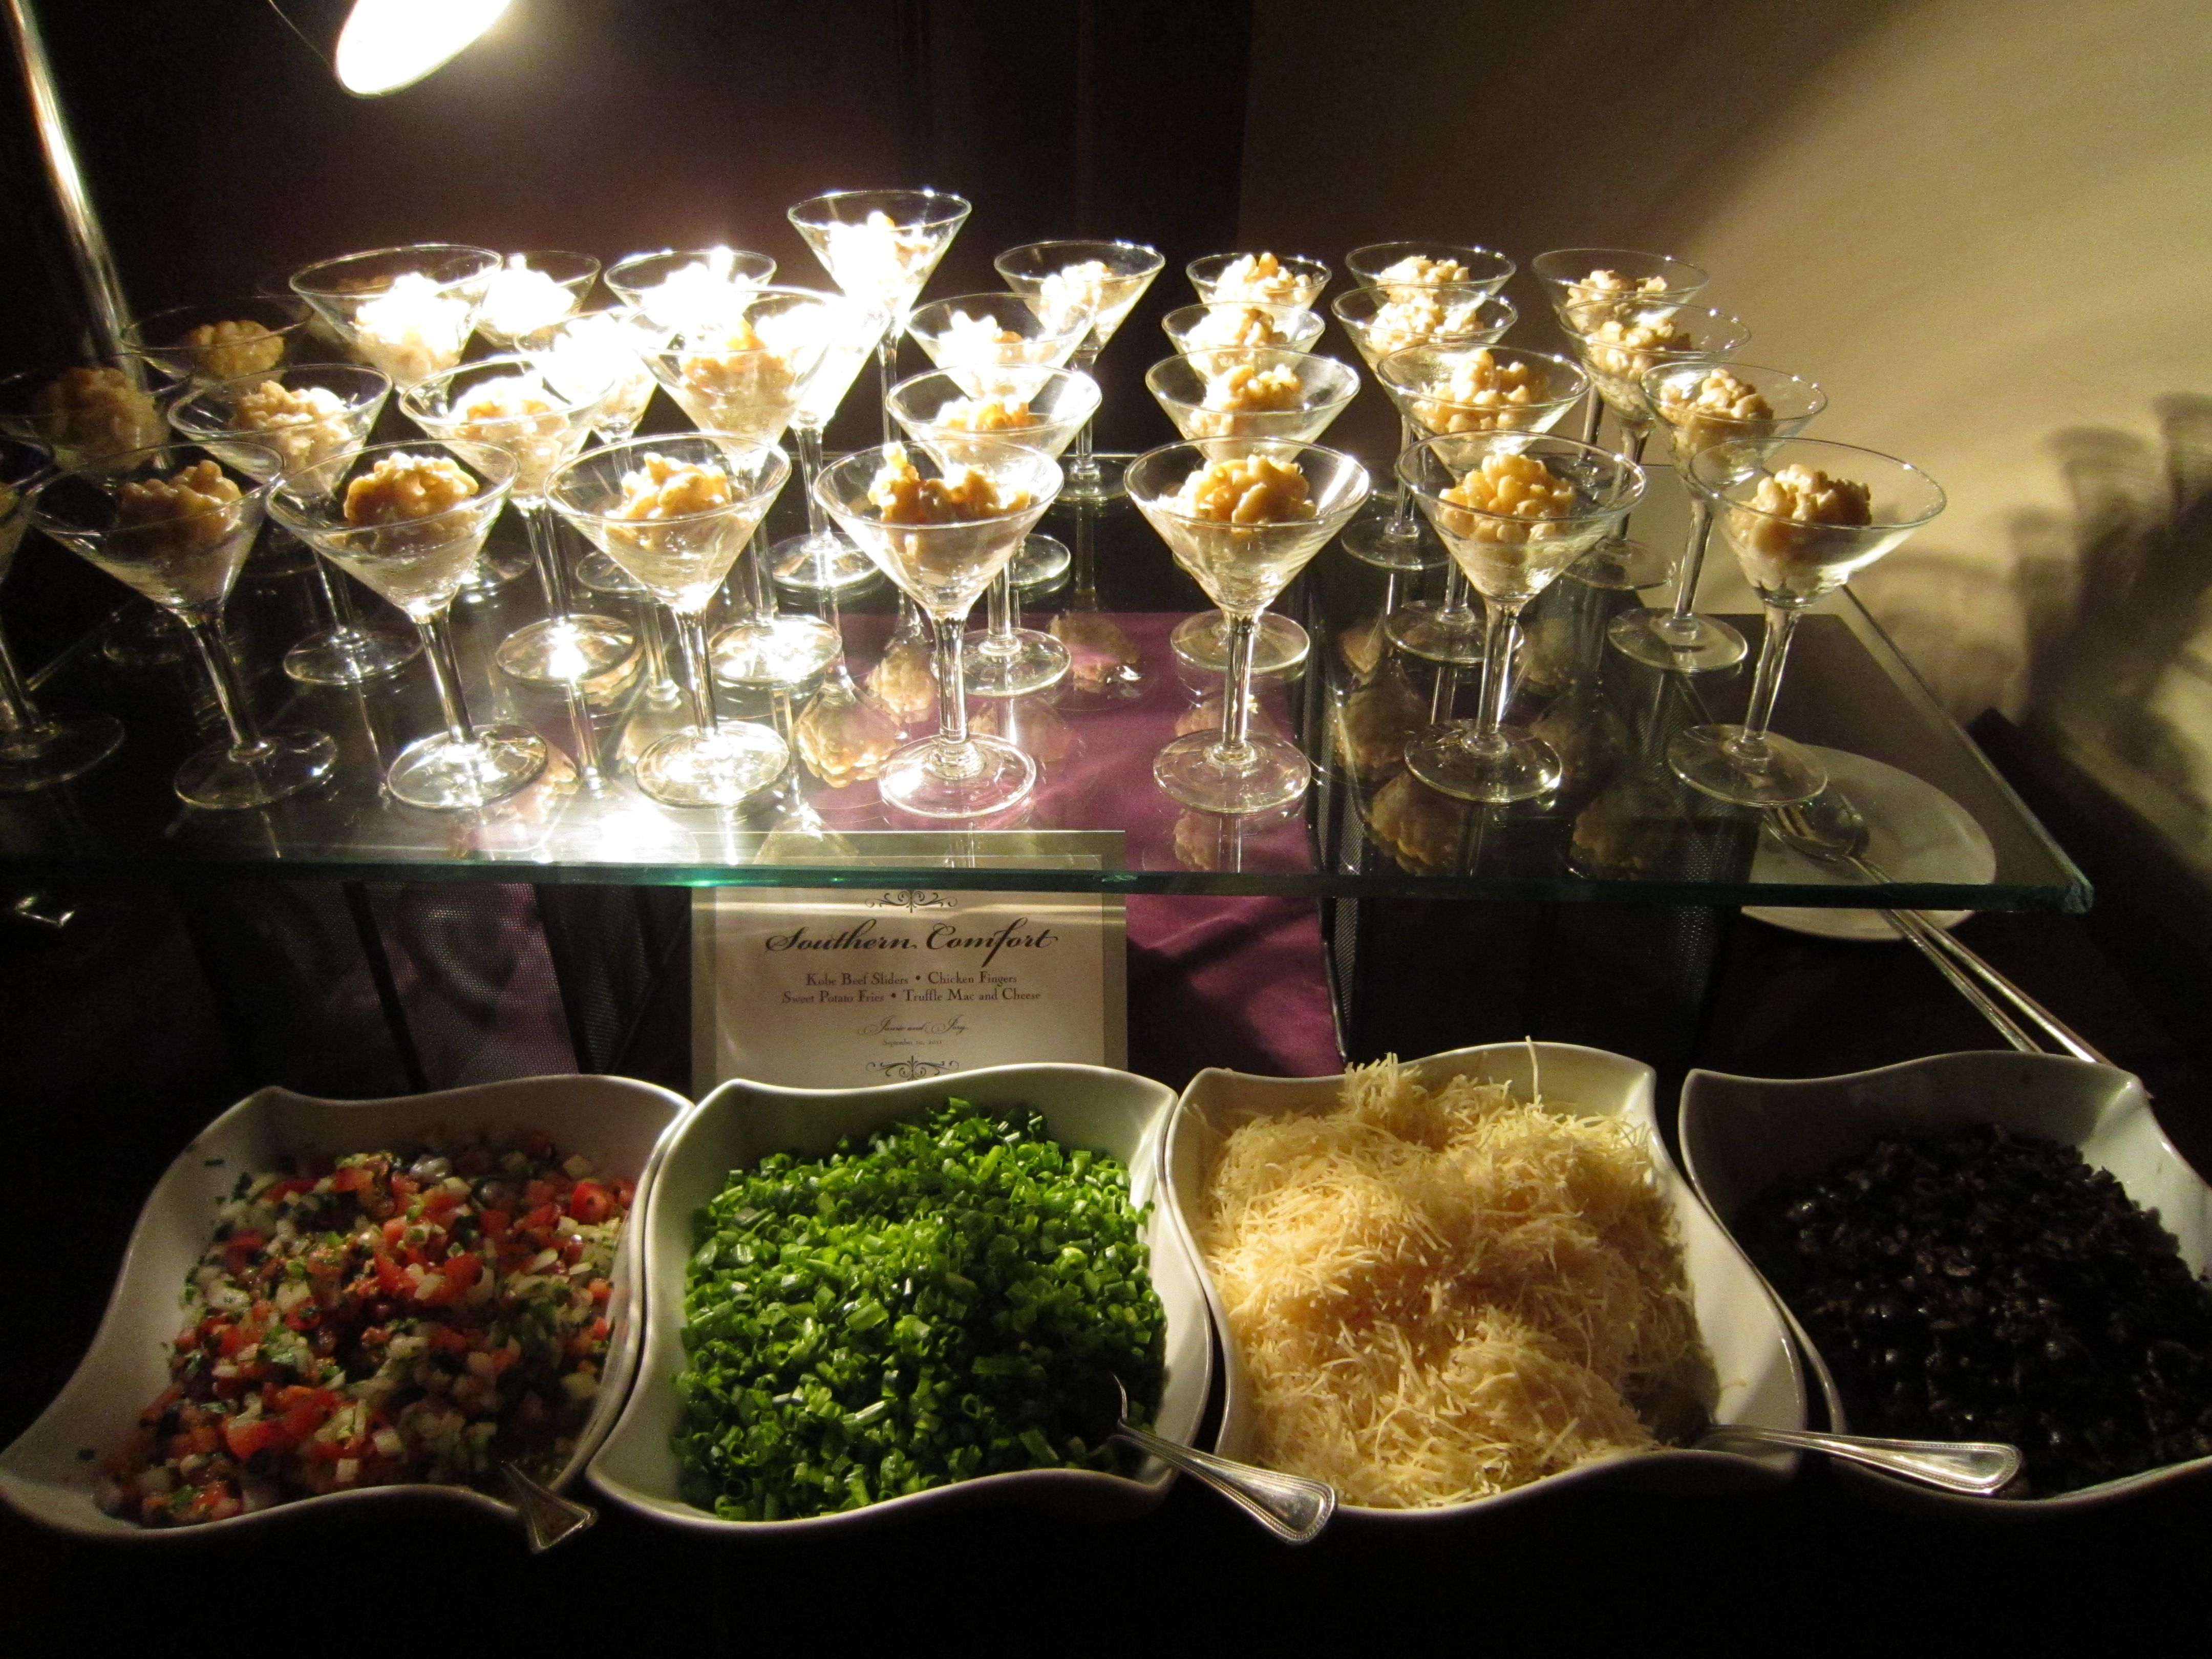 Gourmet macaroni and cheese station stonebriar menu for Food bar ideas for wedding reception